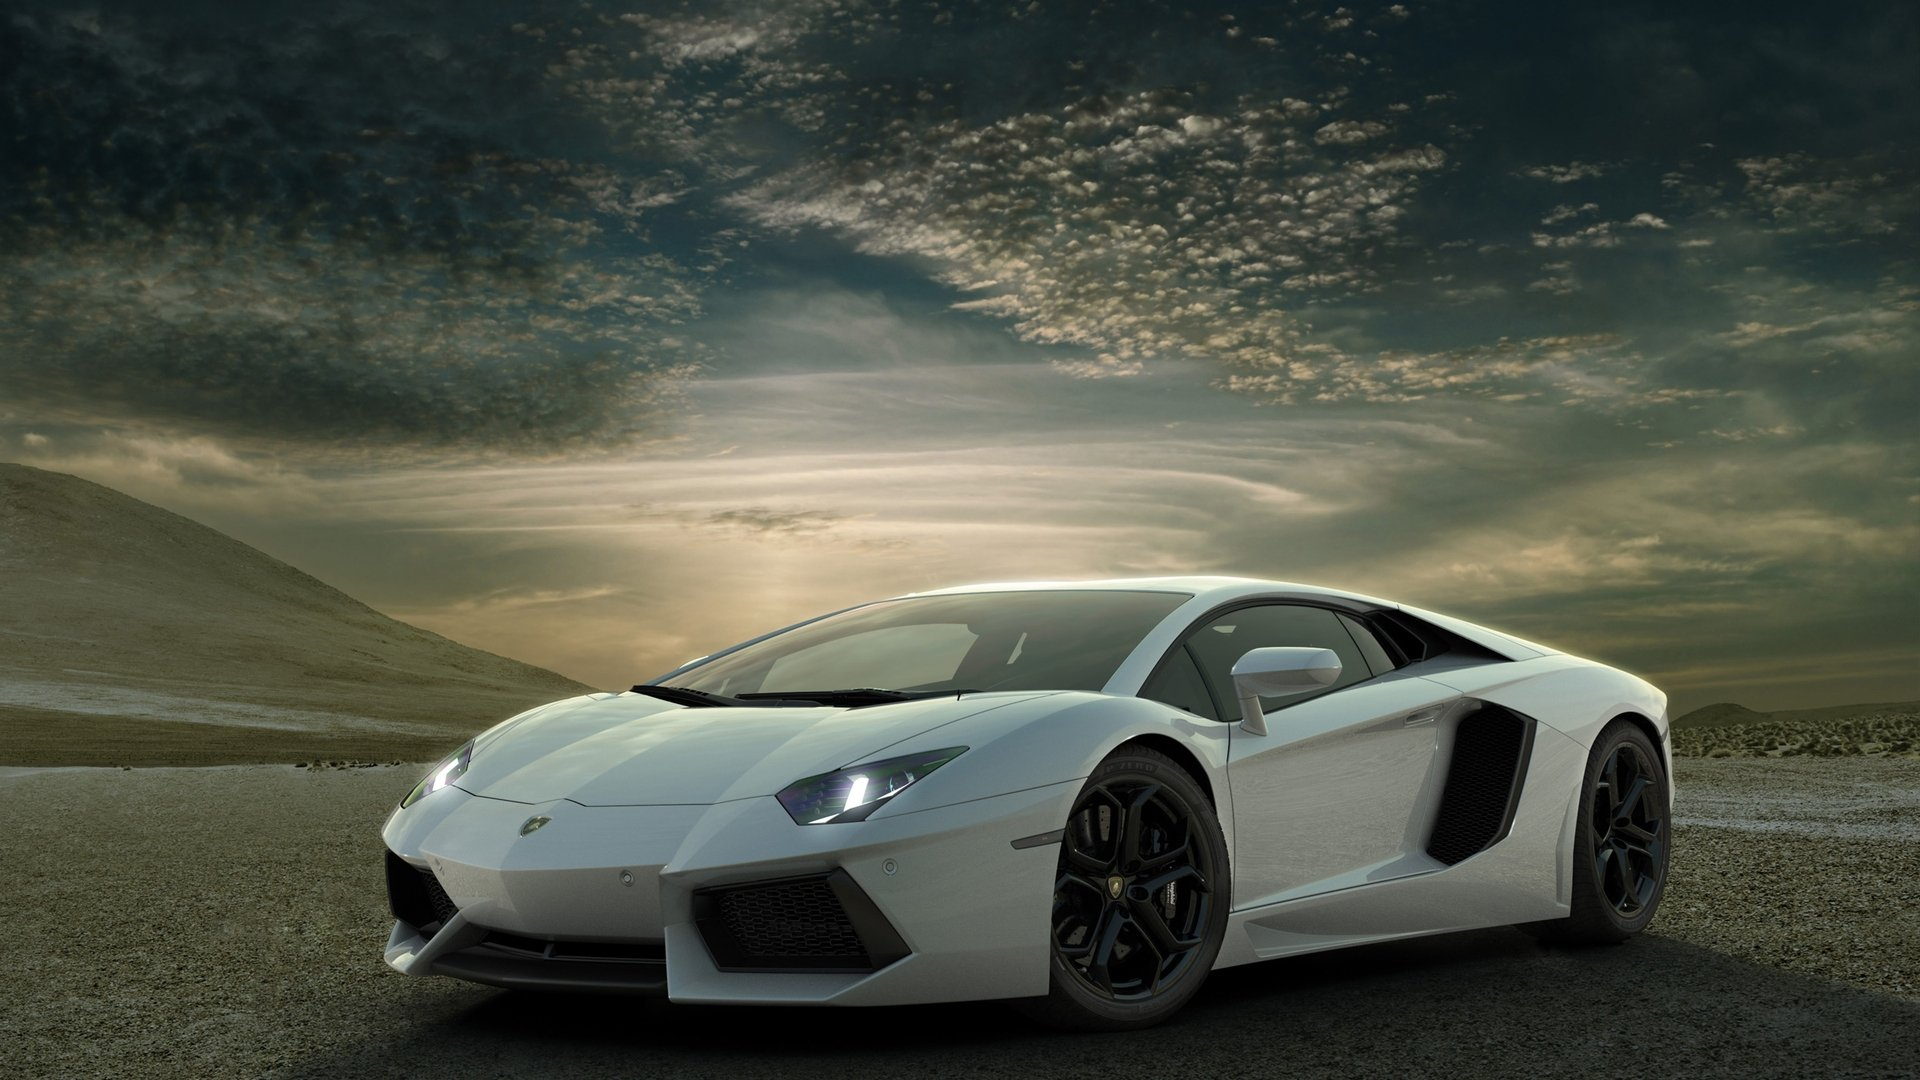 HD Wallpapers HD 1080p Desktop Wallpapers superb lamborghini 1920x1080